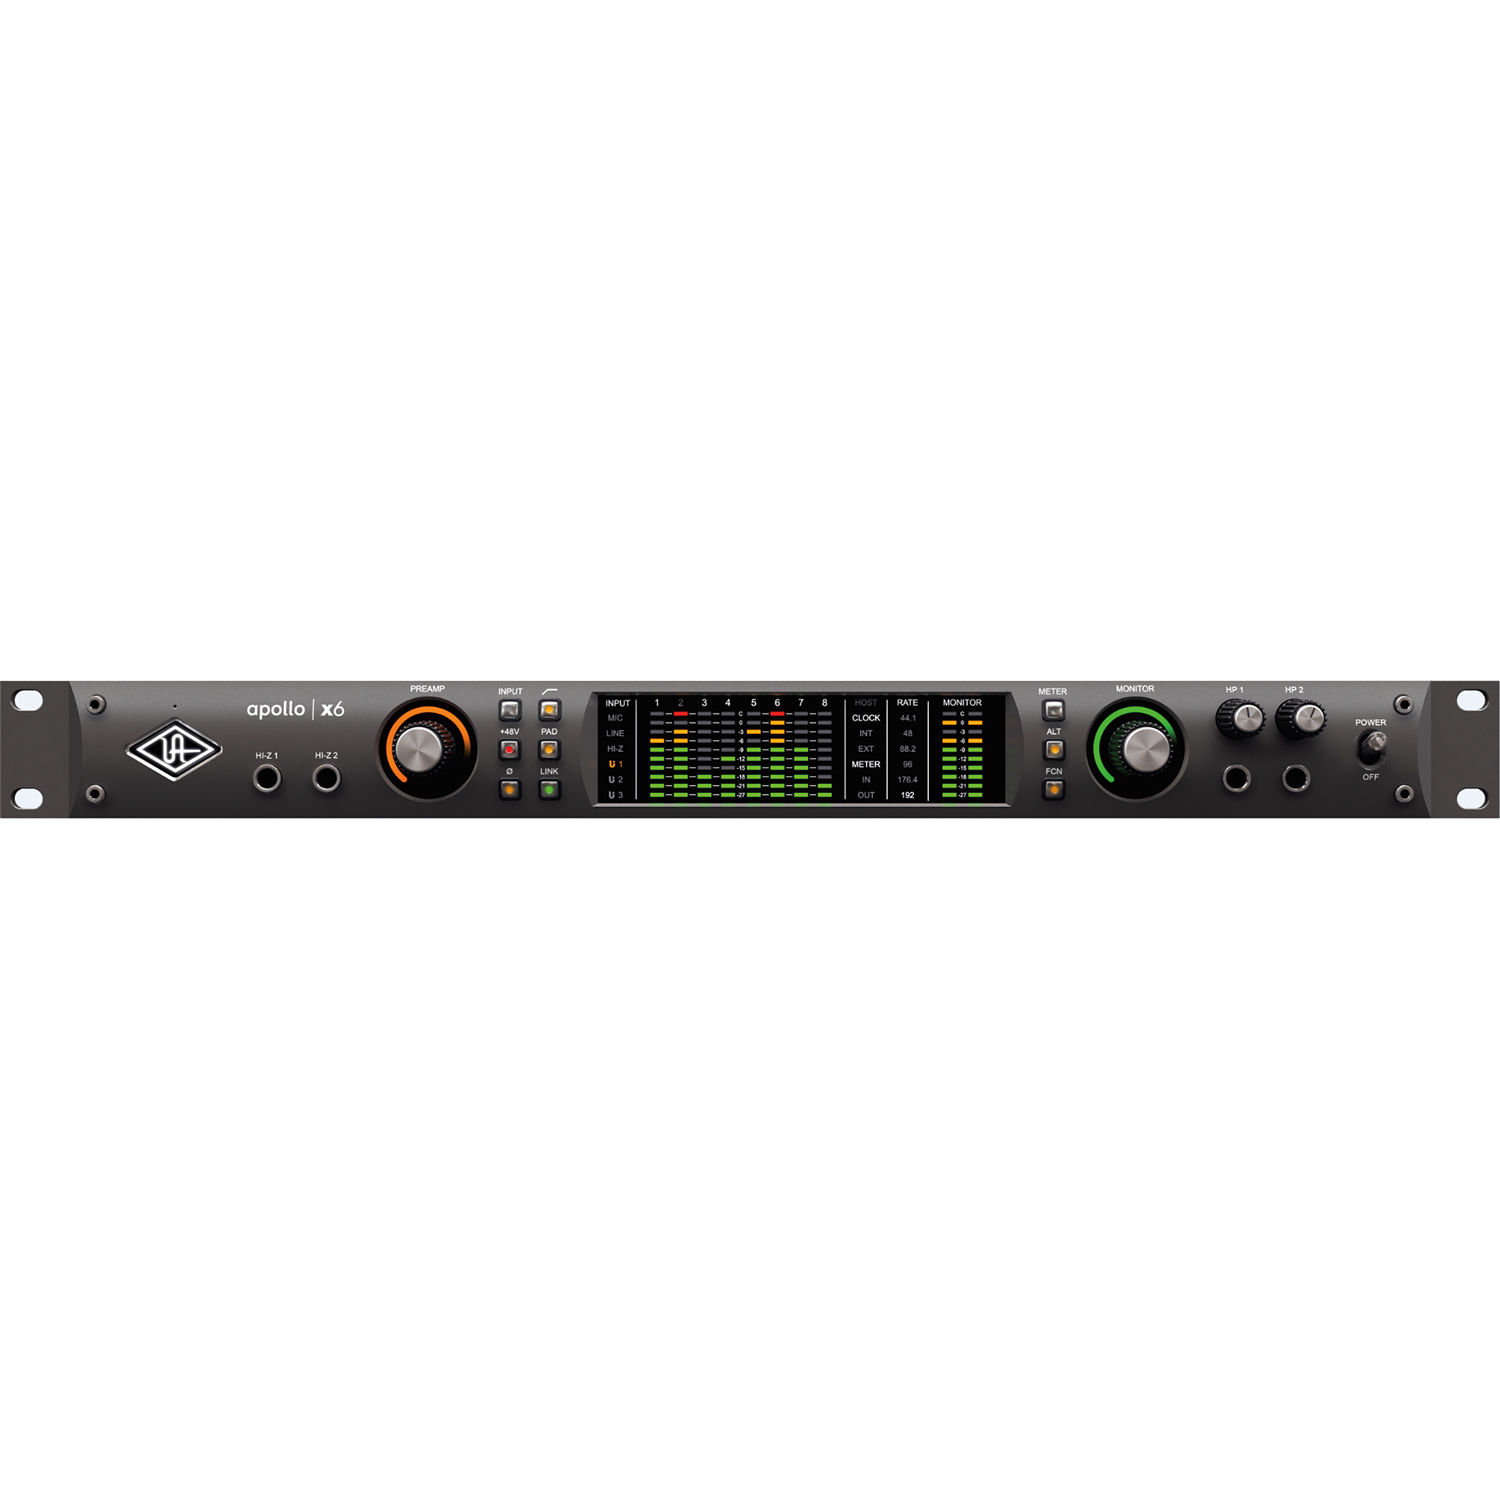 Universal Audio Apollo x6 Rack-Mountable Thunderbolt 3 Audio Interface with  Real-Time UAD Processing